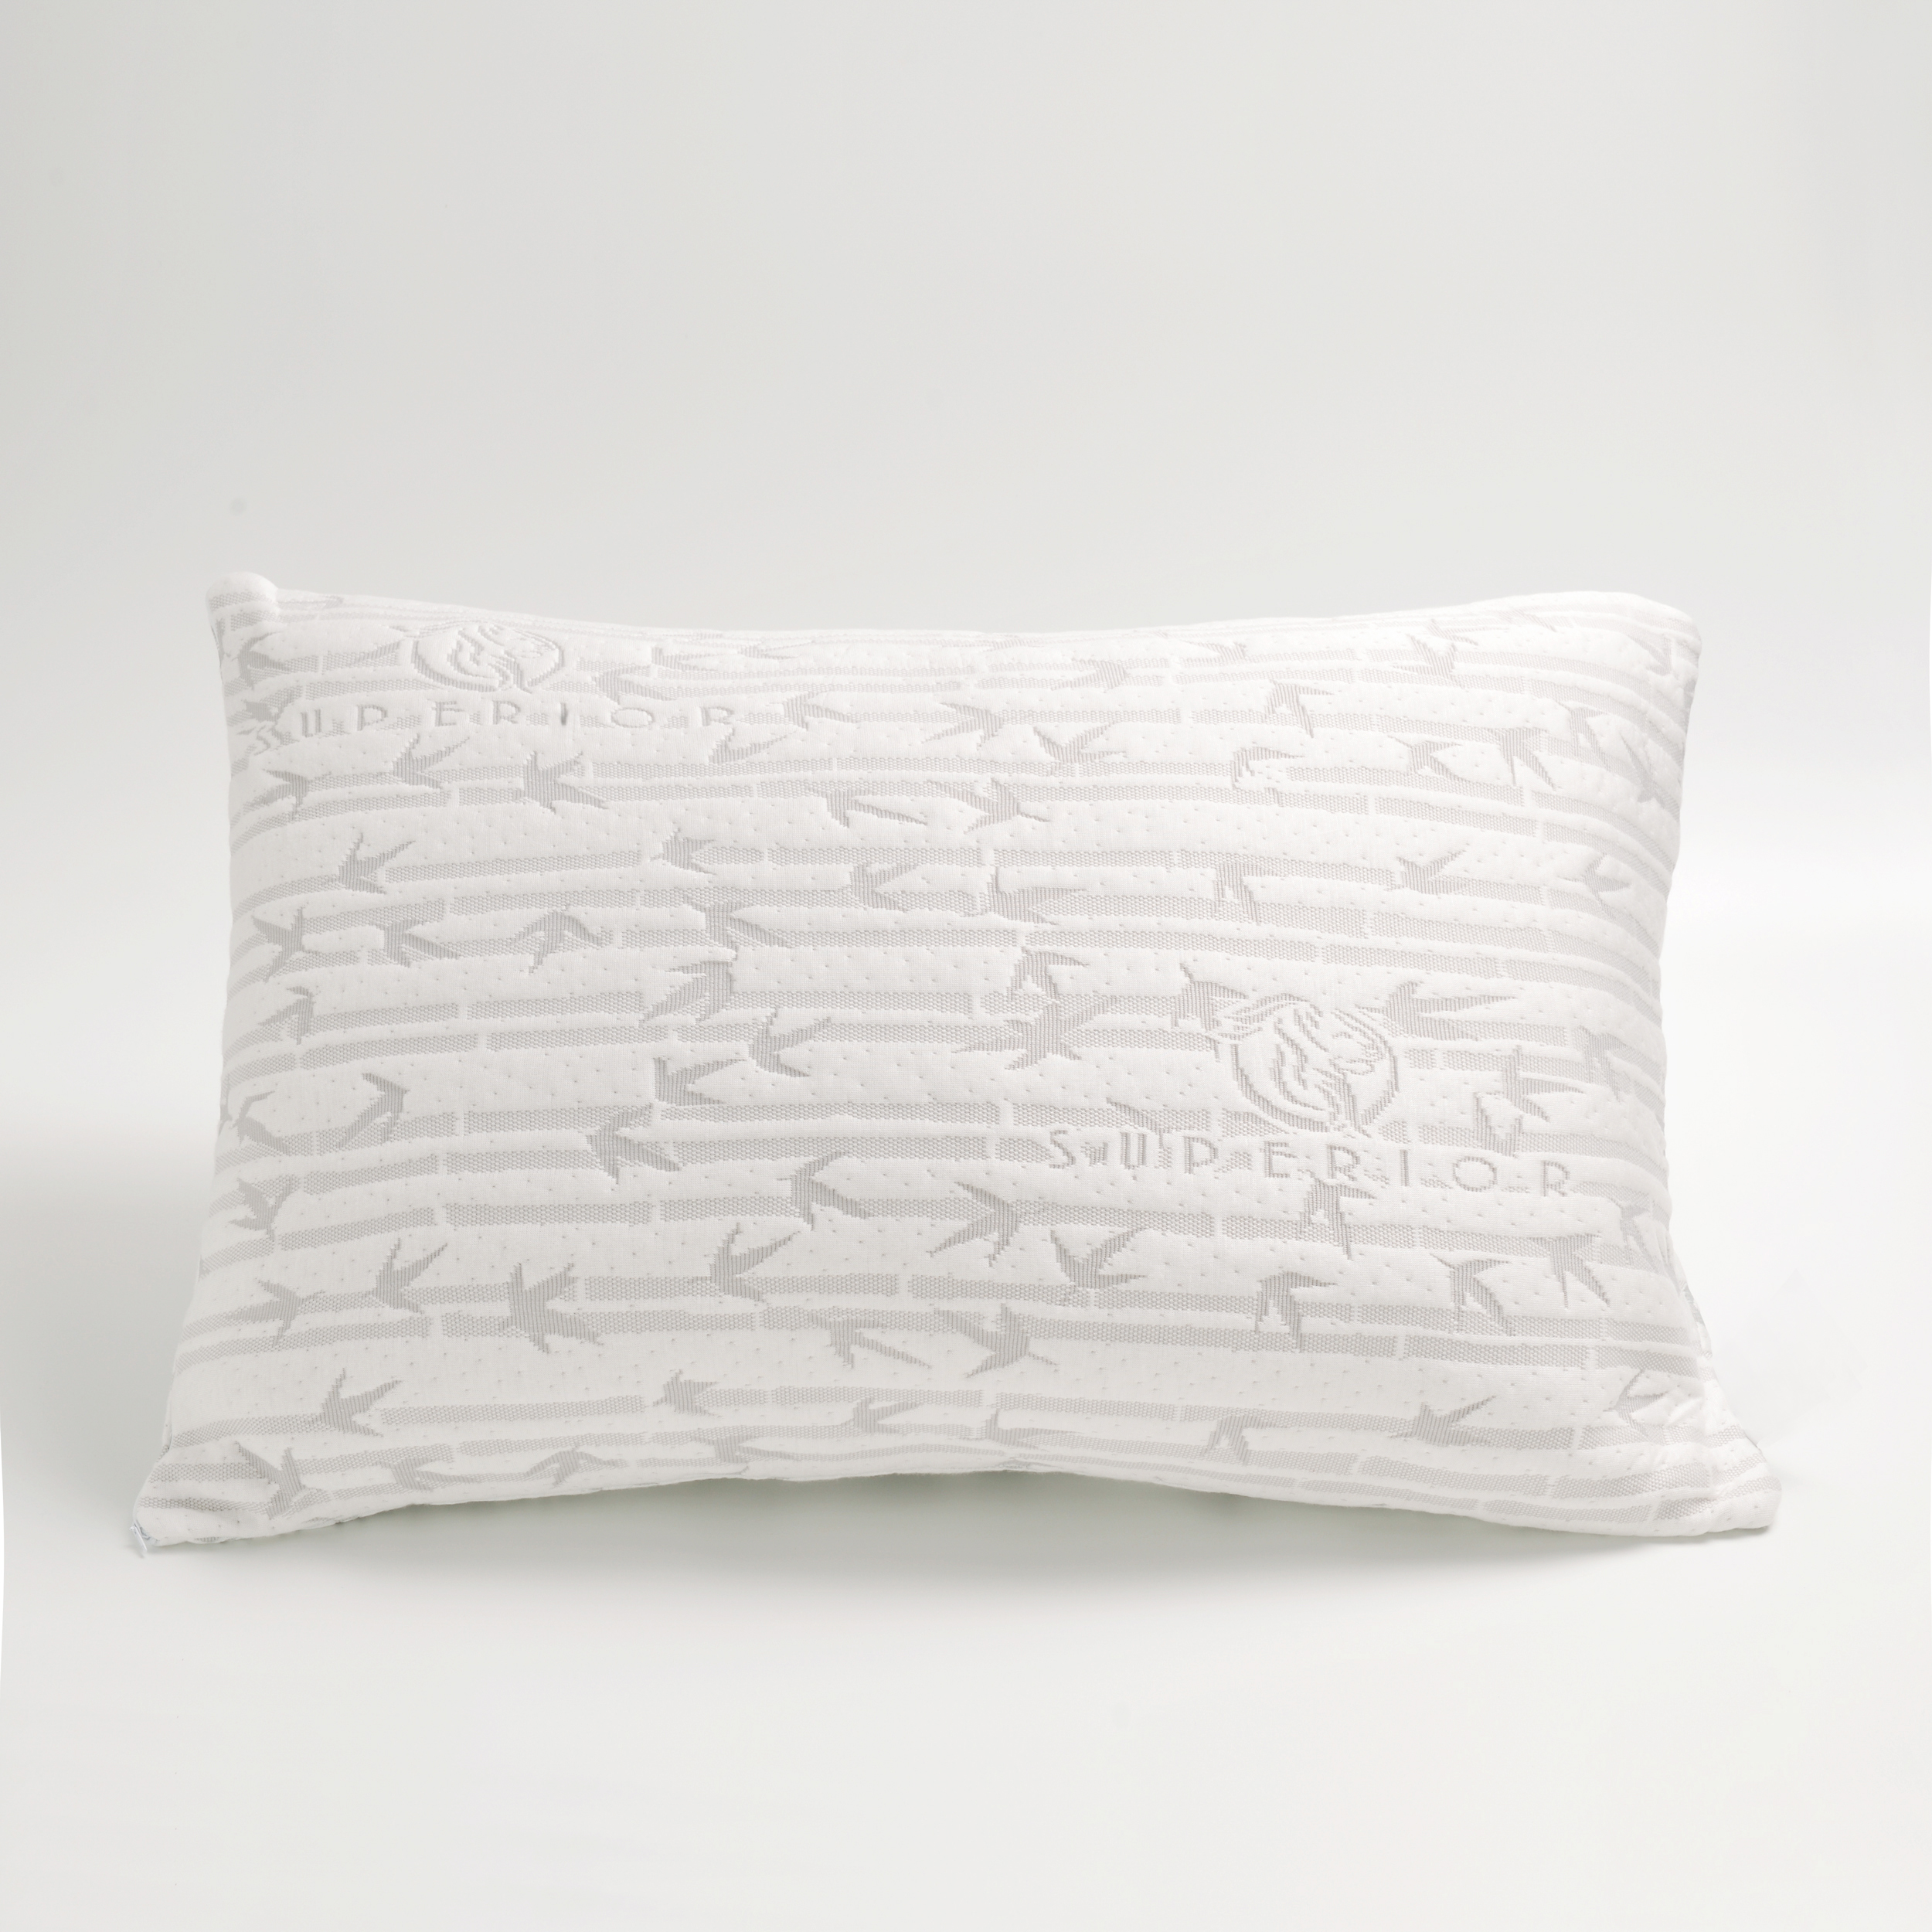 over superior free orders pillow foam from overstock reviews with shredded bath memory addb bamboo rayon on product cover shipping bedding